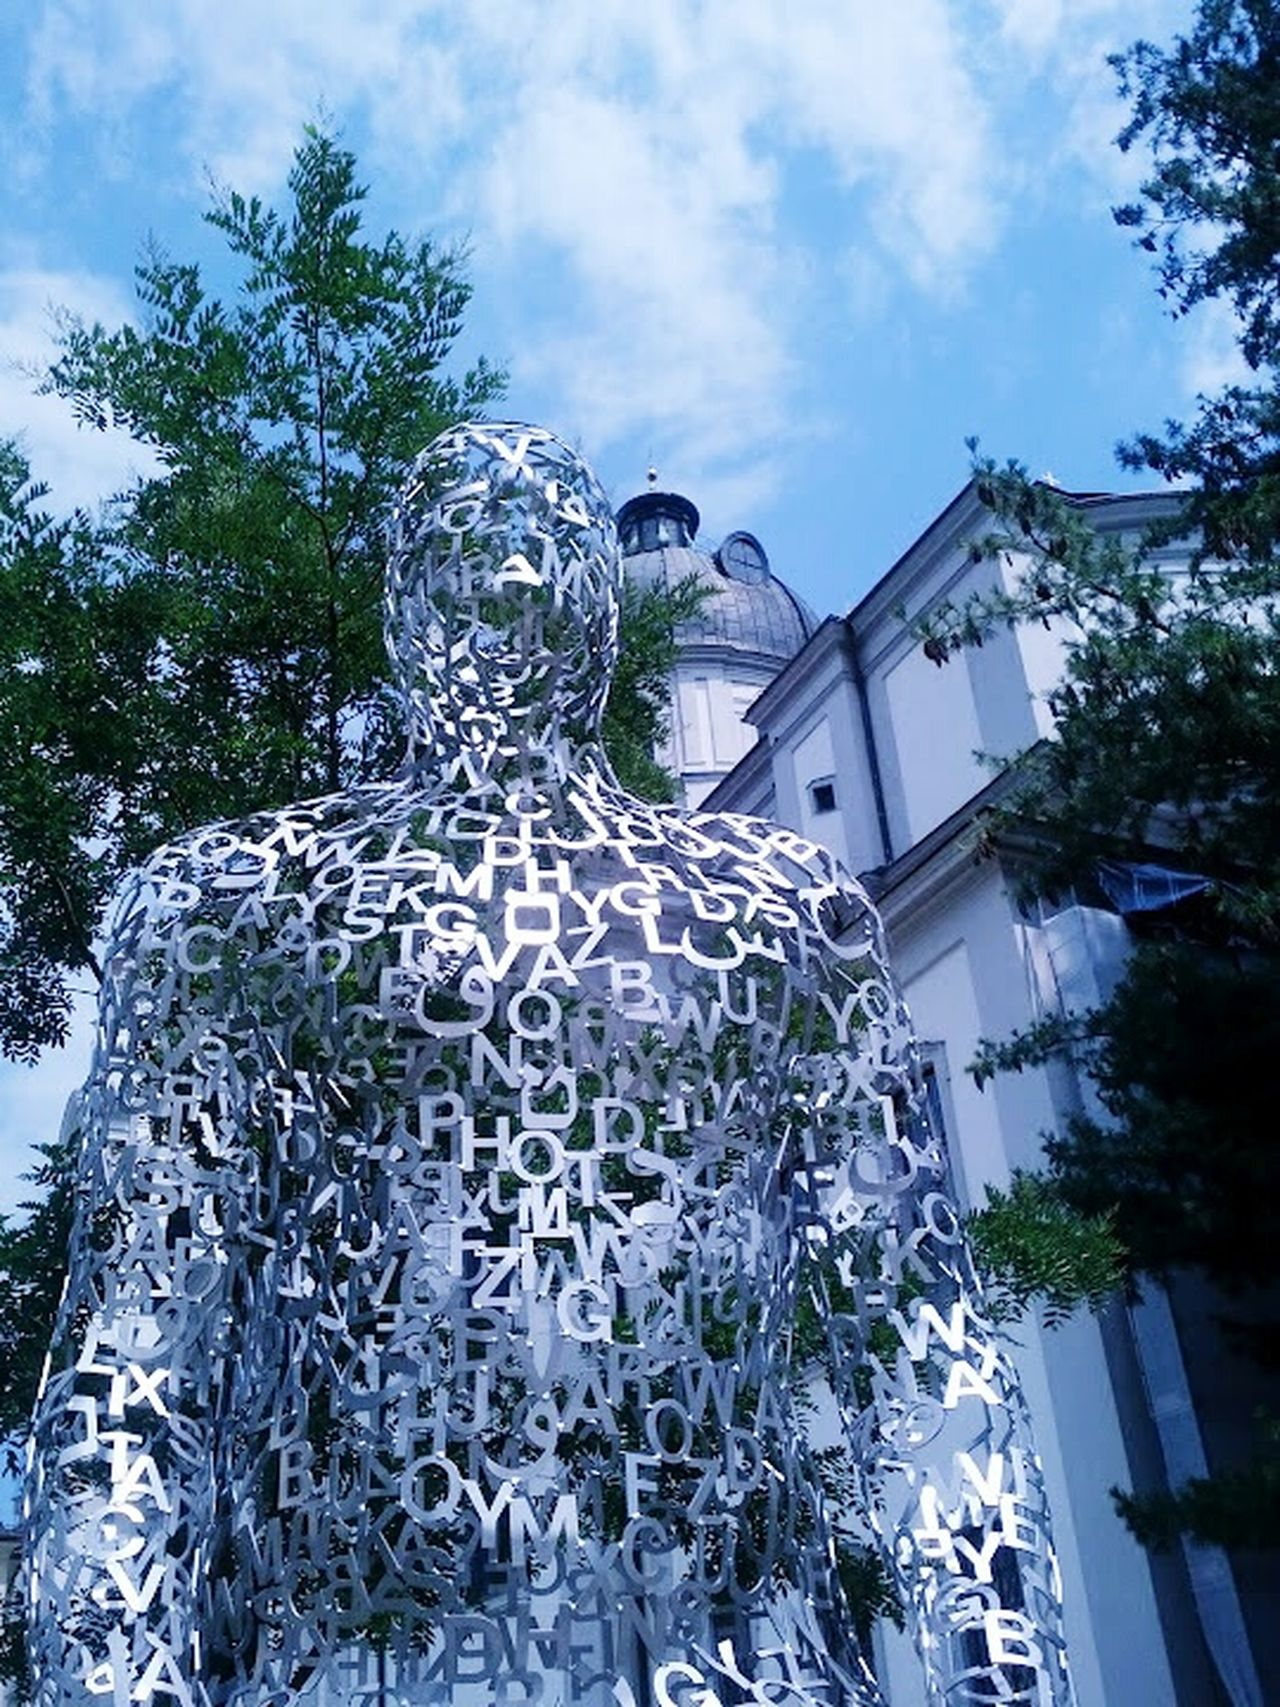 Tryptic Jaume Plensa Salzburg, Austria Salzburg Oldtown Furtwenglerpark ArtWork Blue & White Sunny Day Art Church Statue Trees Green Trees Blue Sky Summer Whiteclouds Steelart Metal